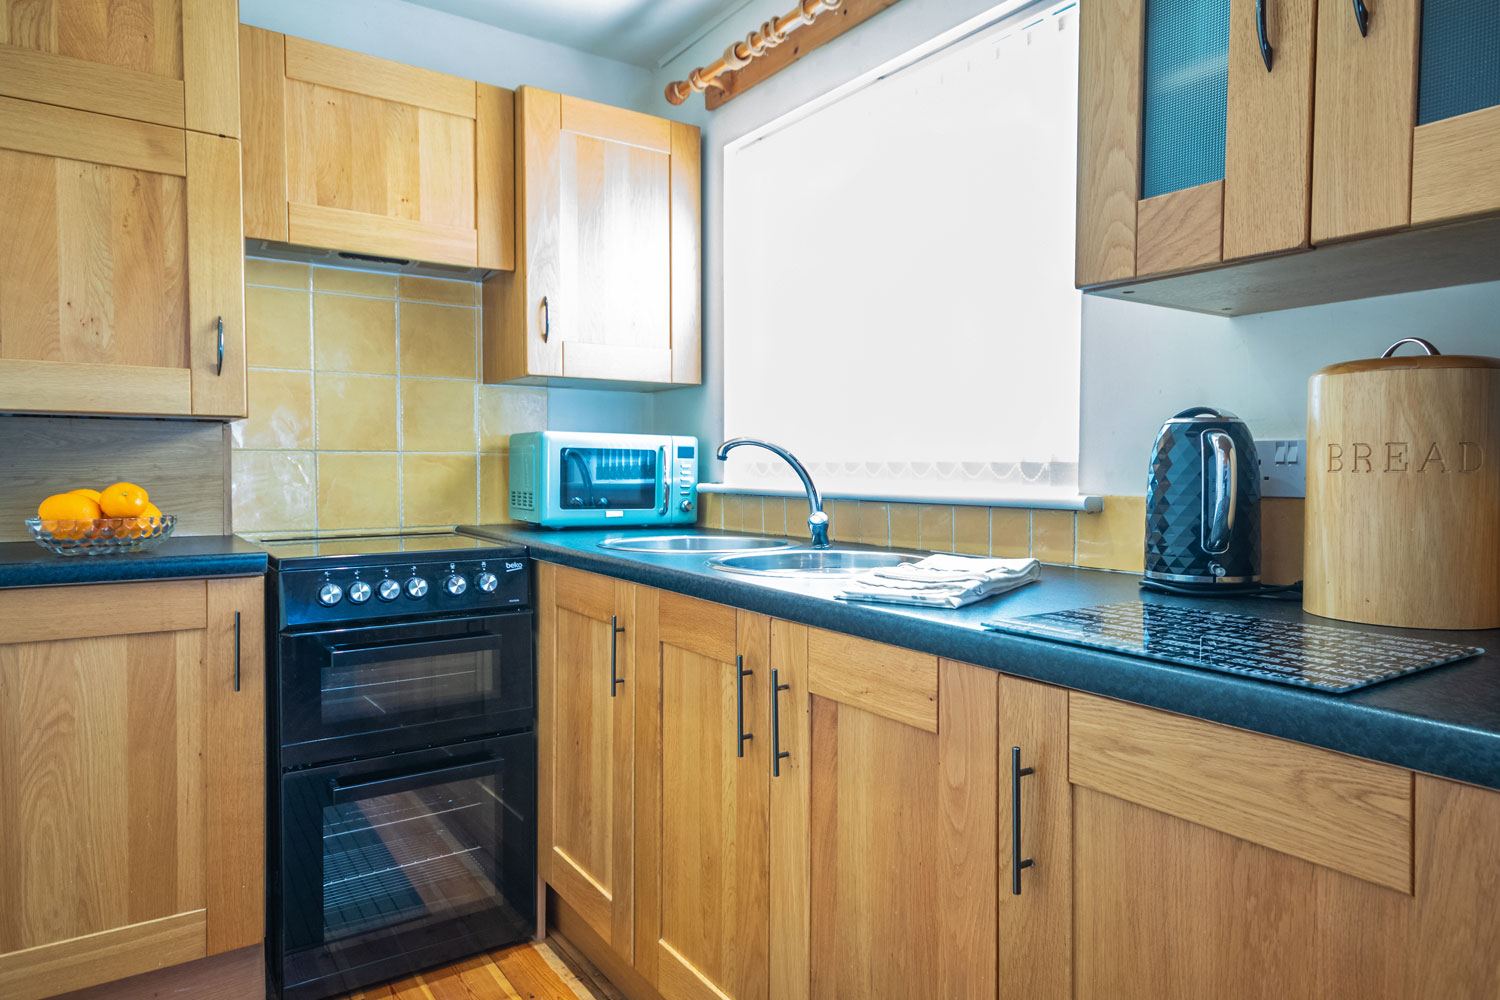 The Kitchen at the Cottage at Coquet Meadows